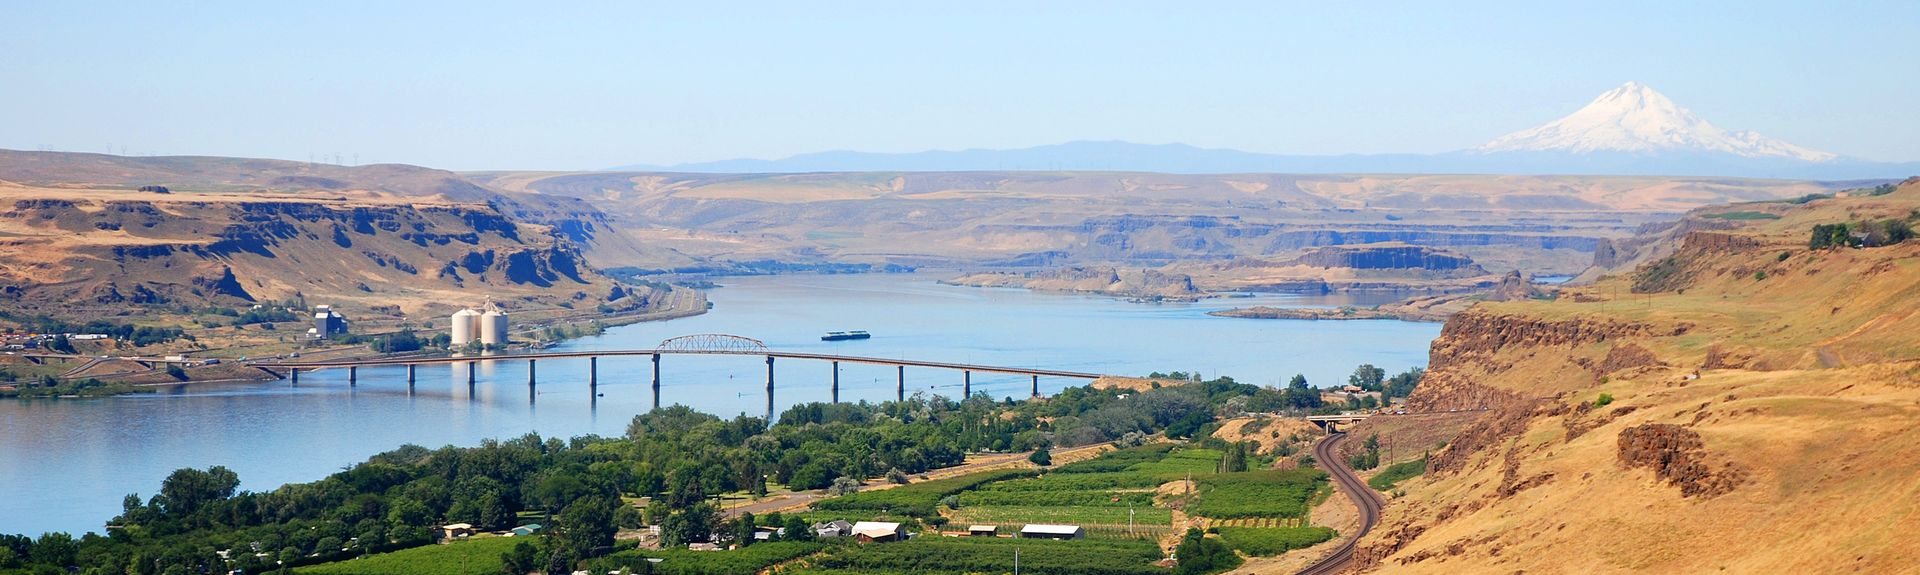 The Dalles, Oregon, United States of America